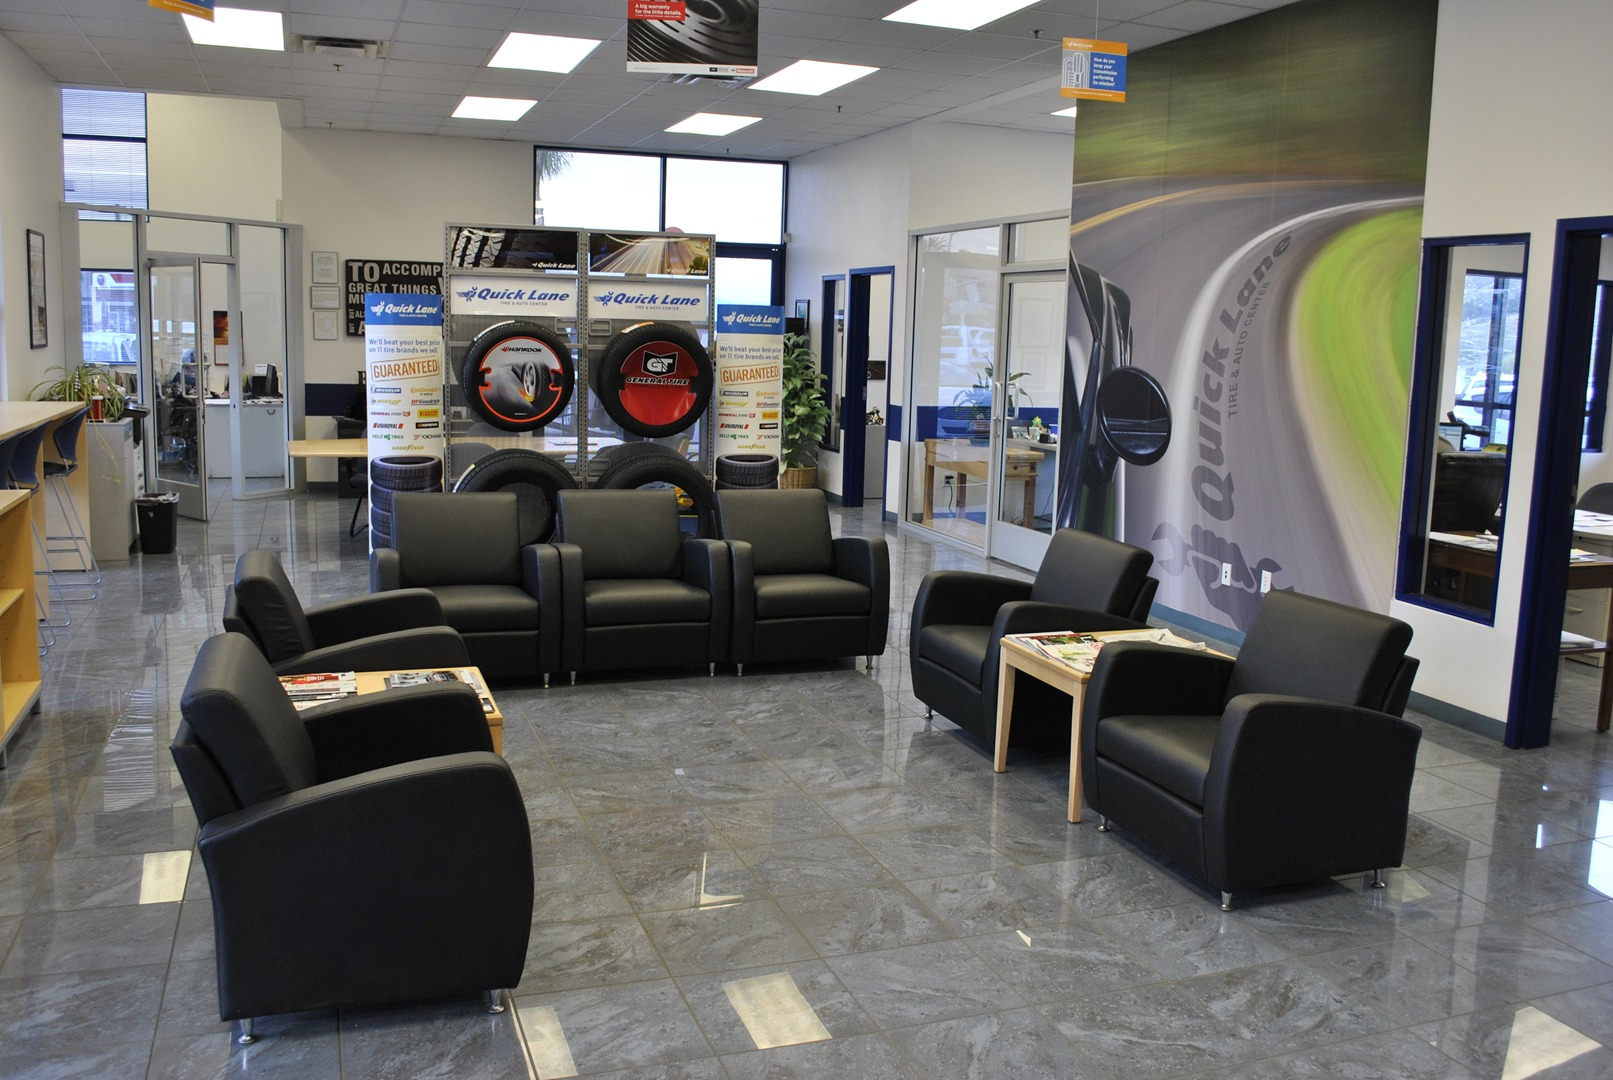 Coupons For Oil Change >> Quick Lane Tire & Auto Center $50.00 Certificate